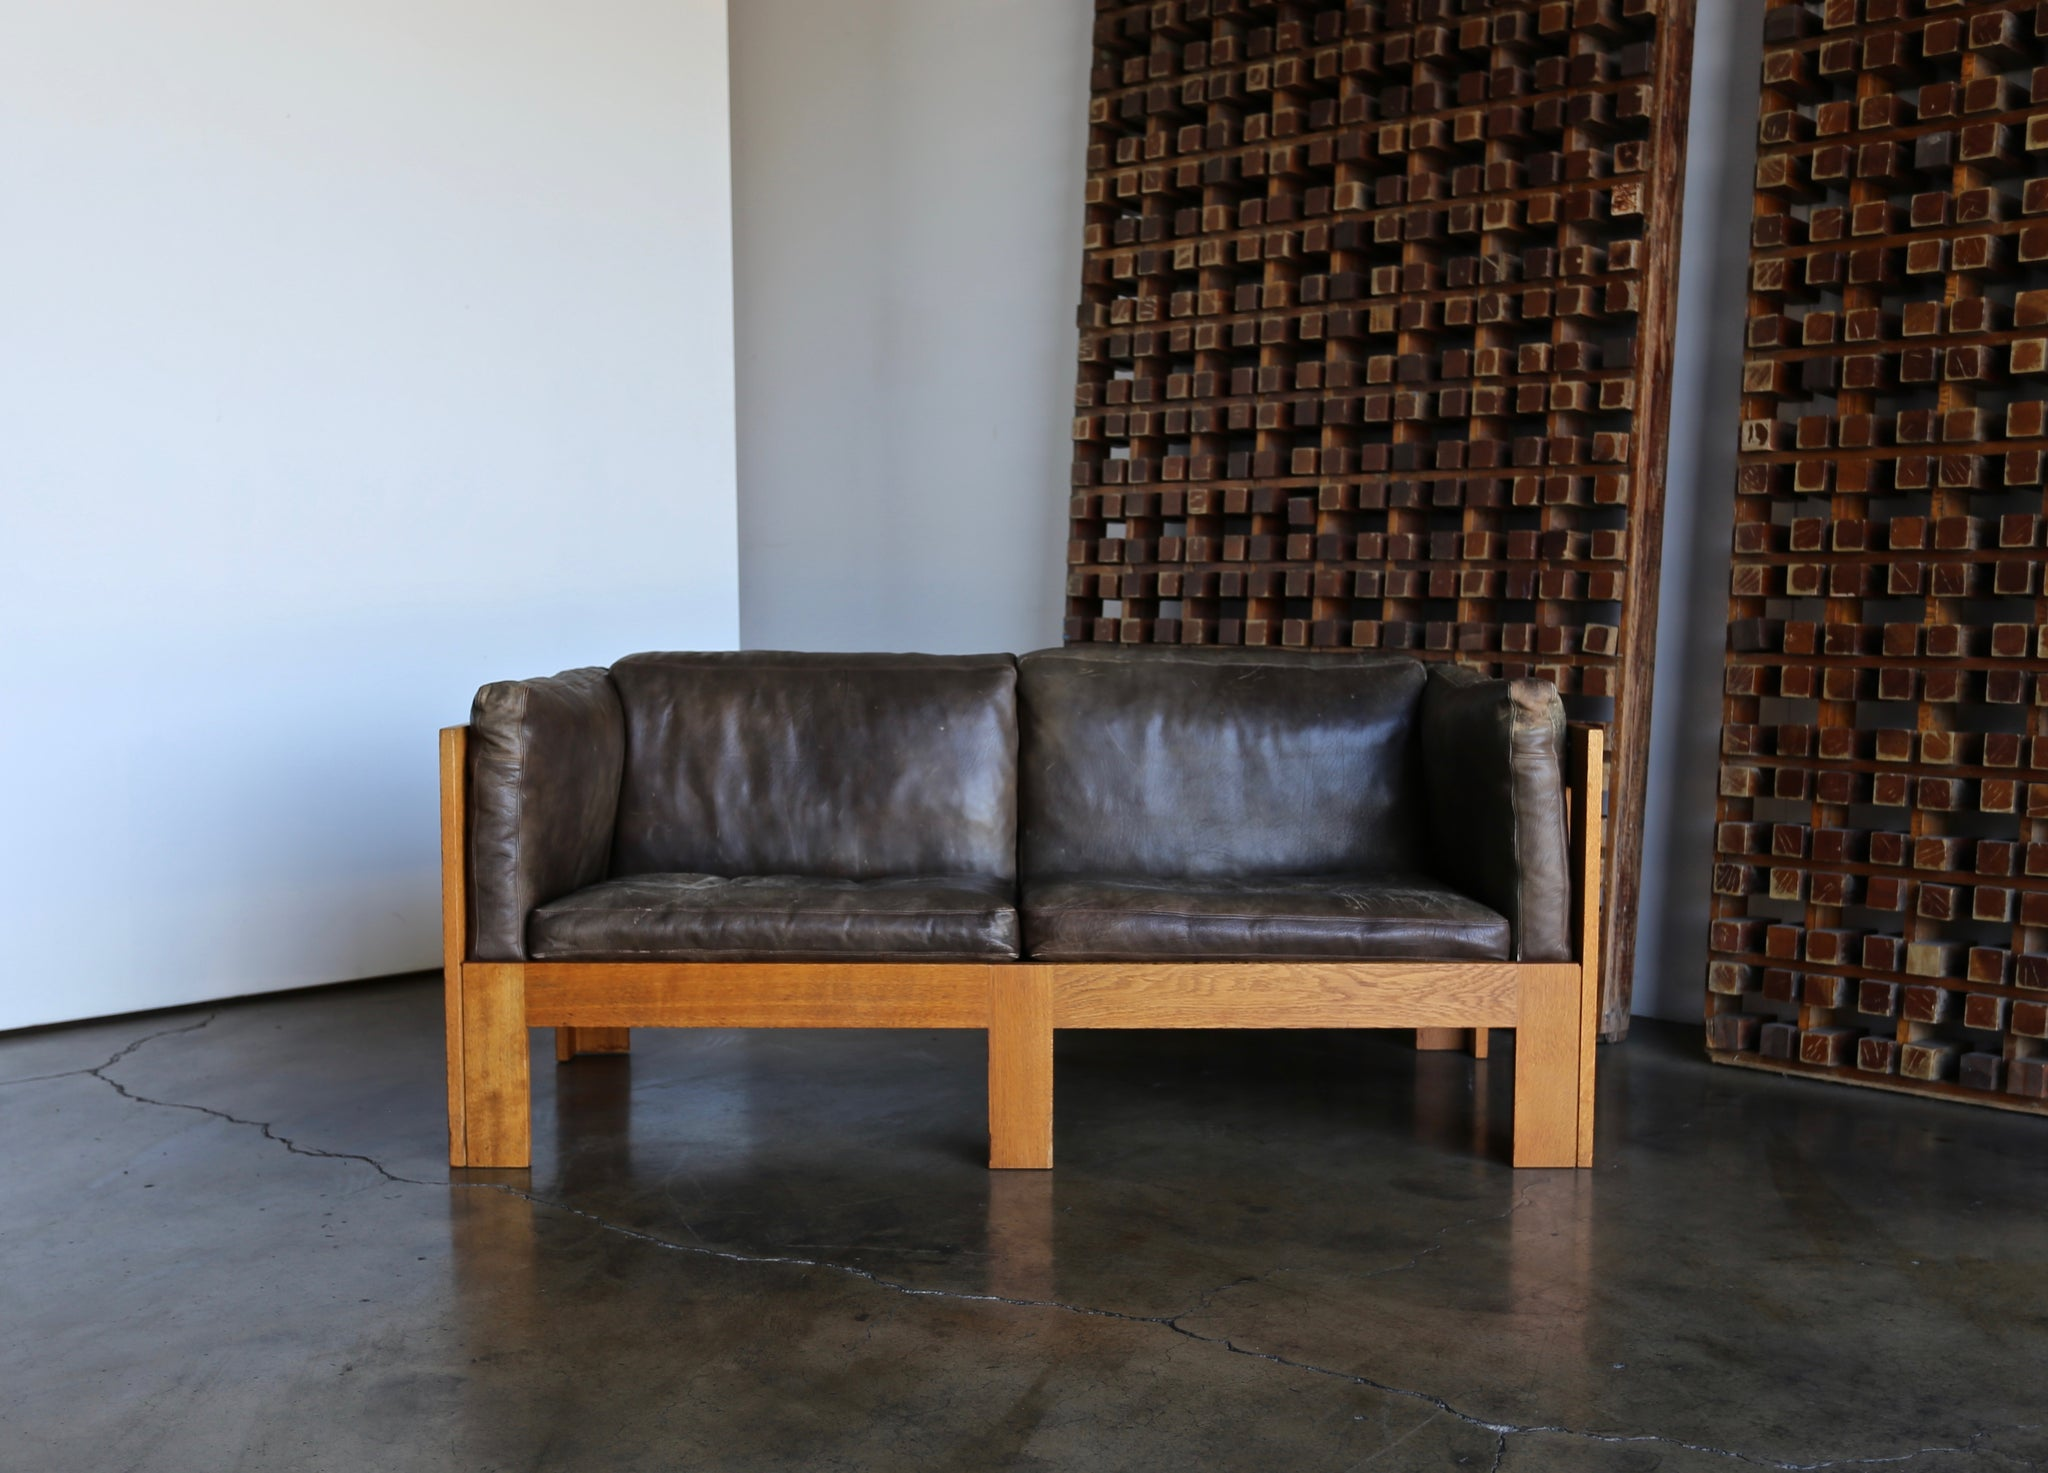 = SOLD = Tage Poulsen Pair of Sofas Model TP632, circa 1962